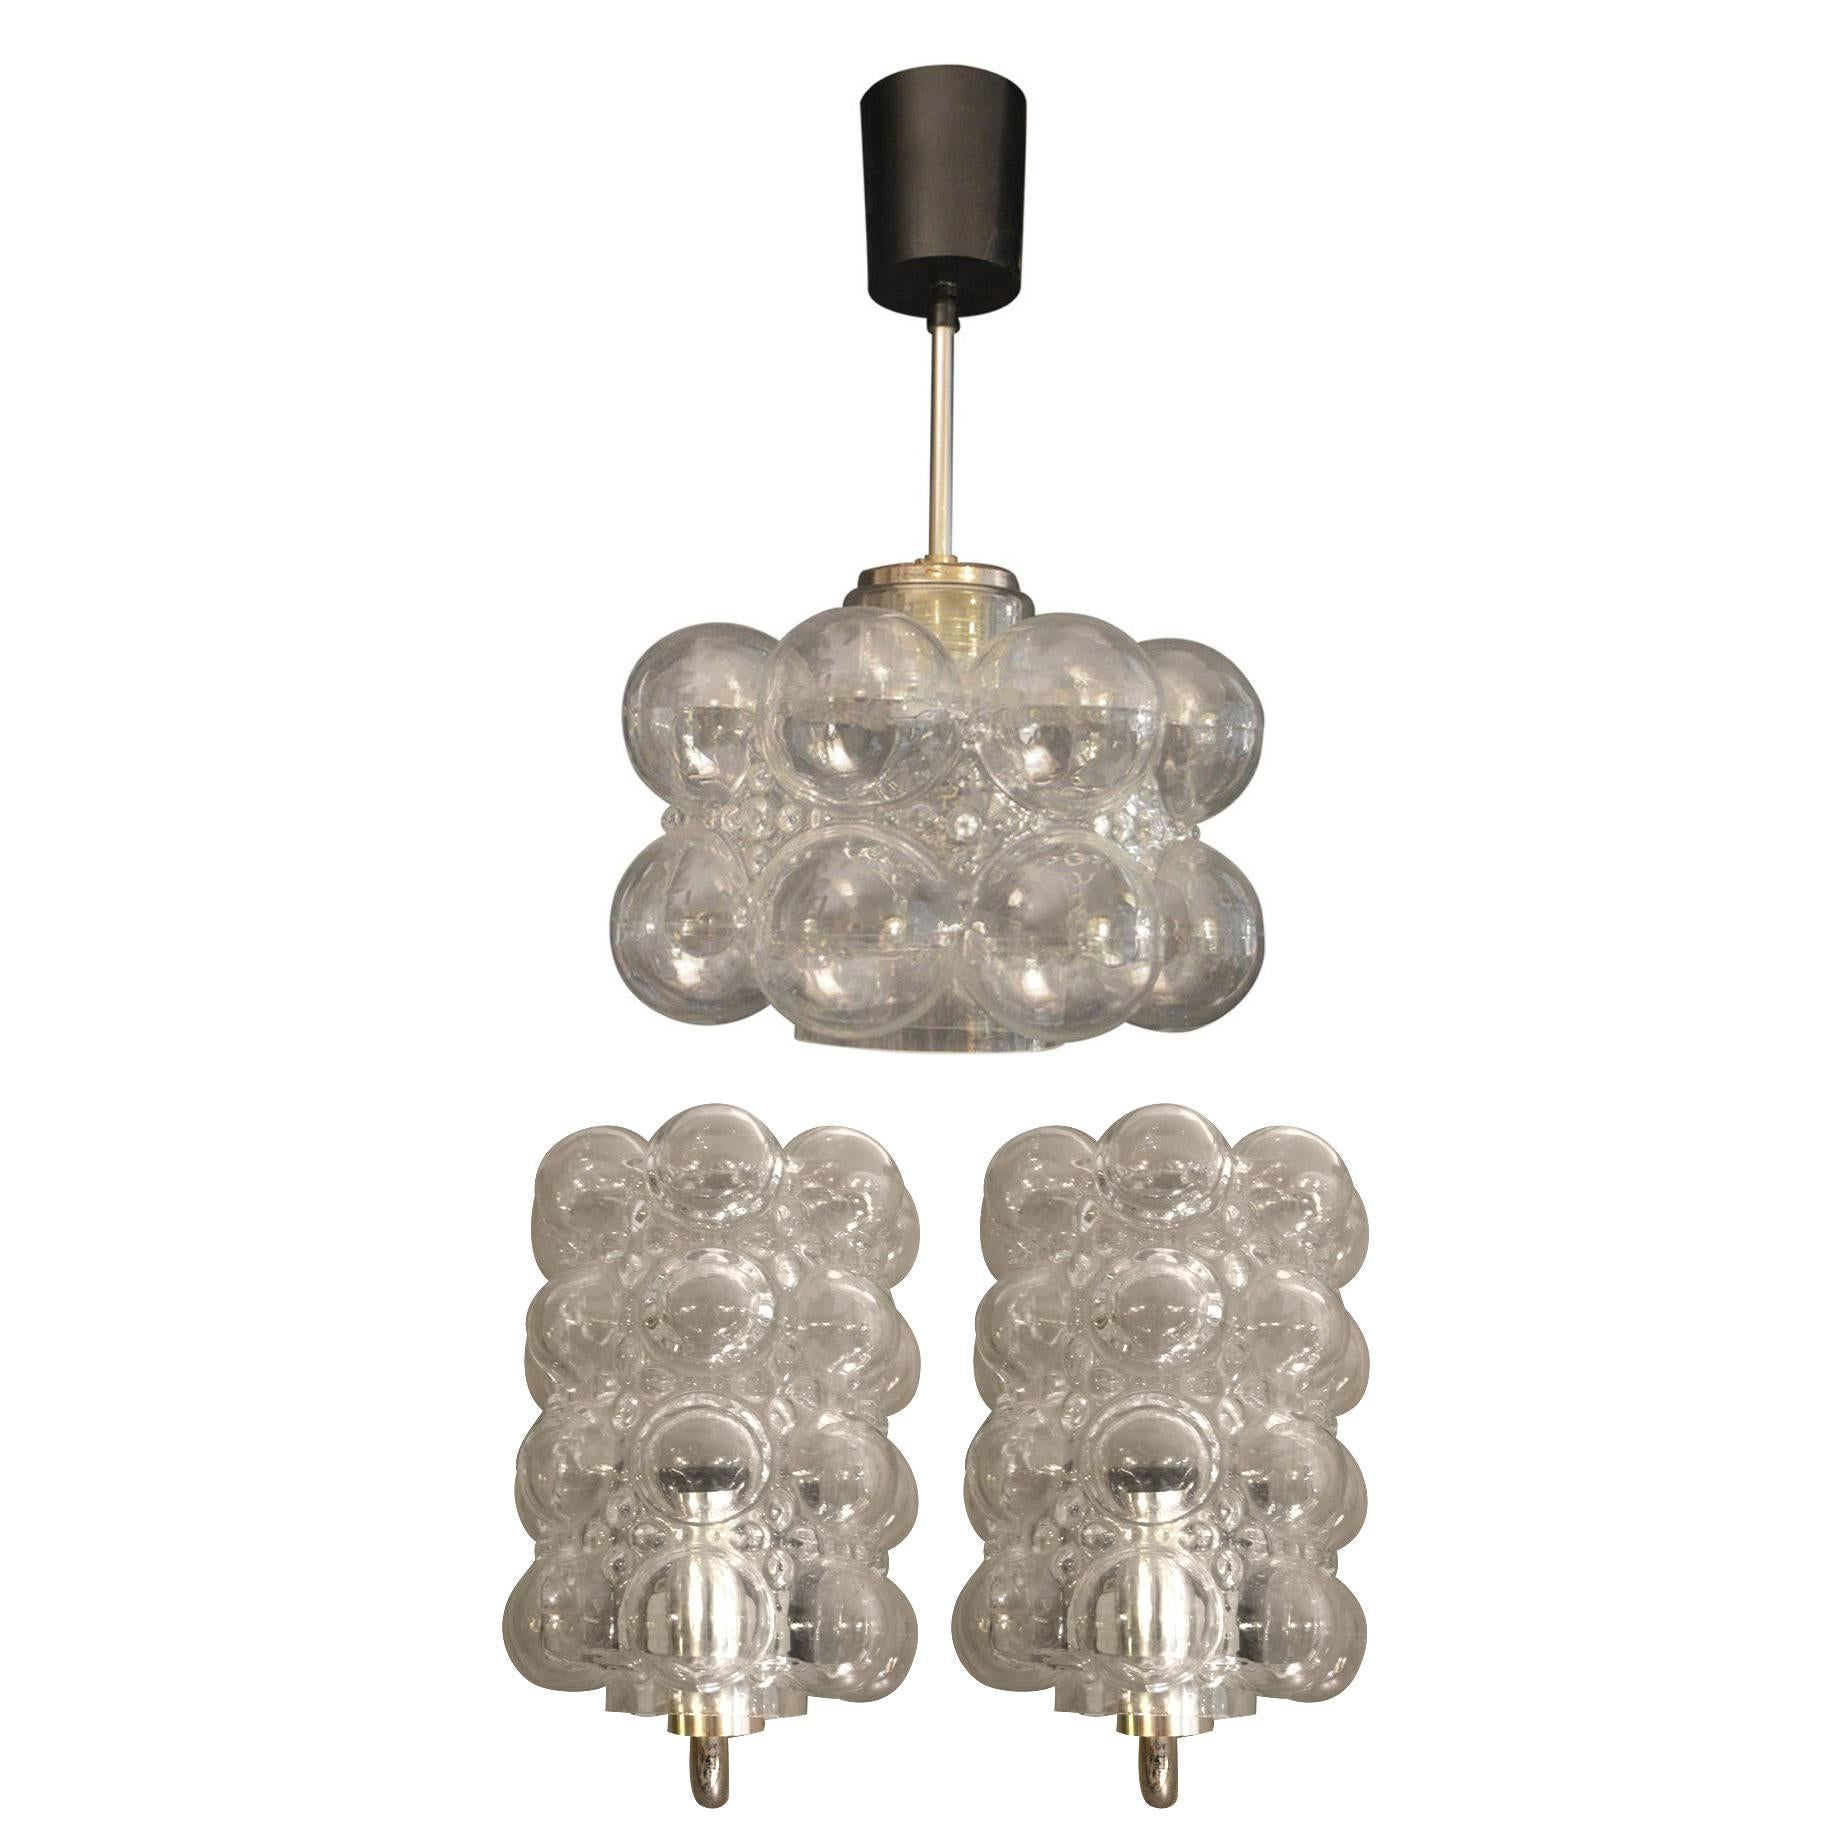 Pair of Handblown Glass Bubble Sconces with Matching Pendant Chandelier